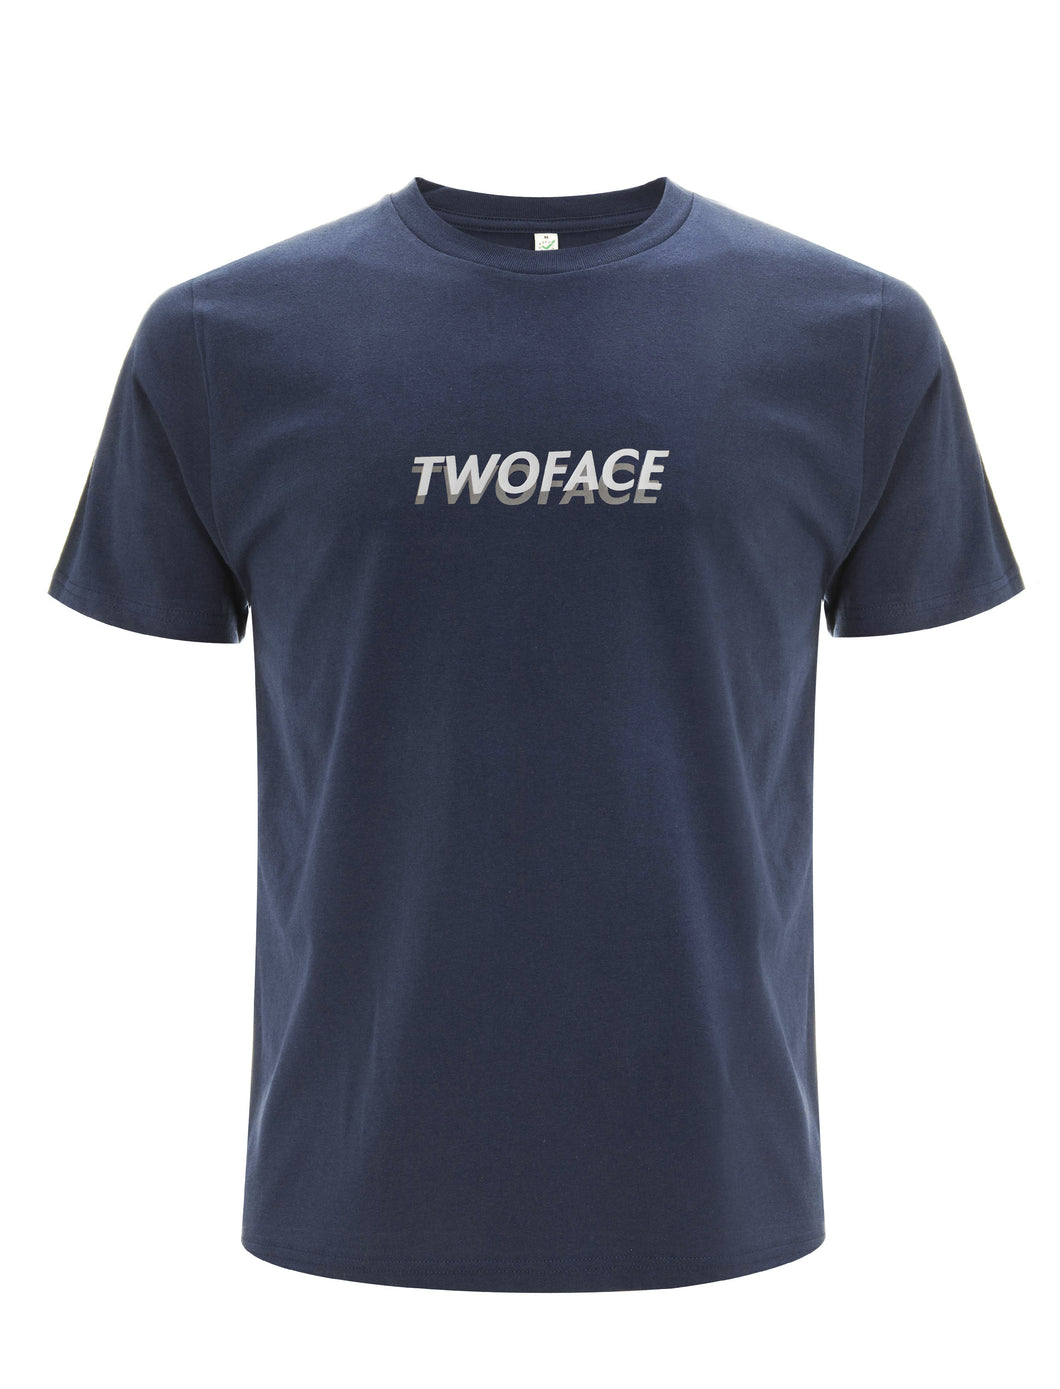 Reflective undertone Navy logo T-shirt